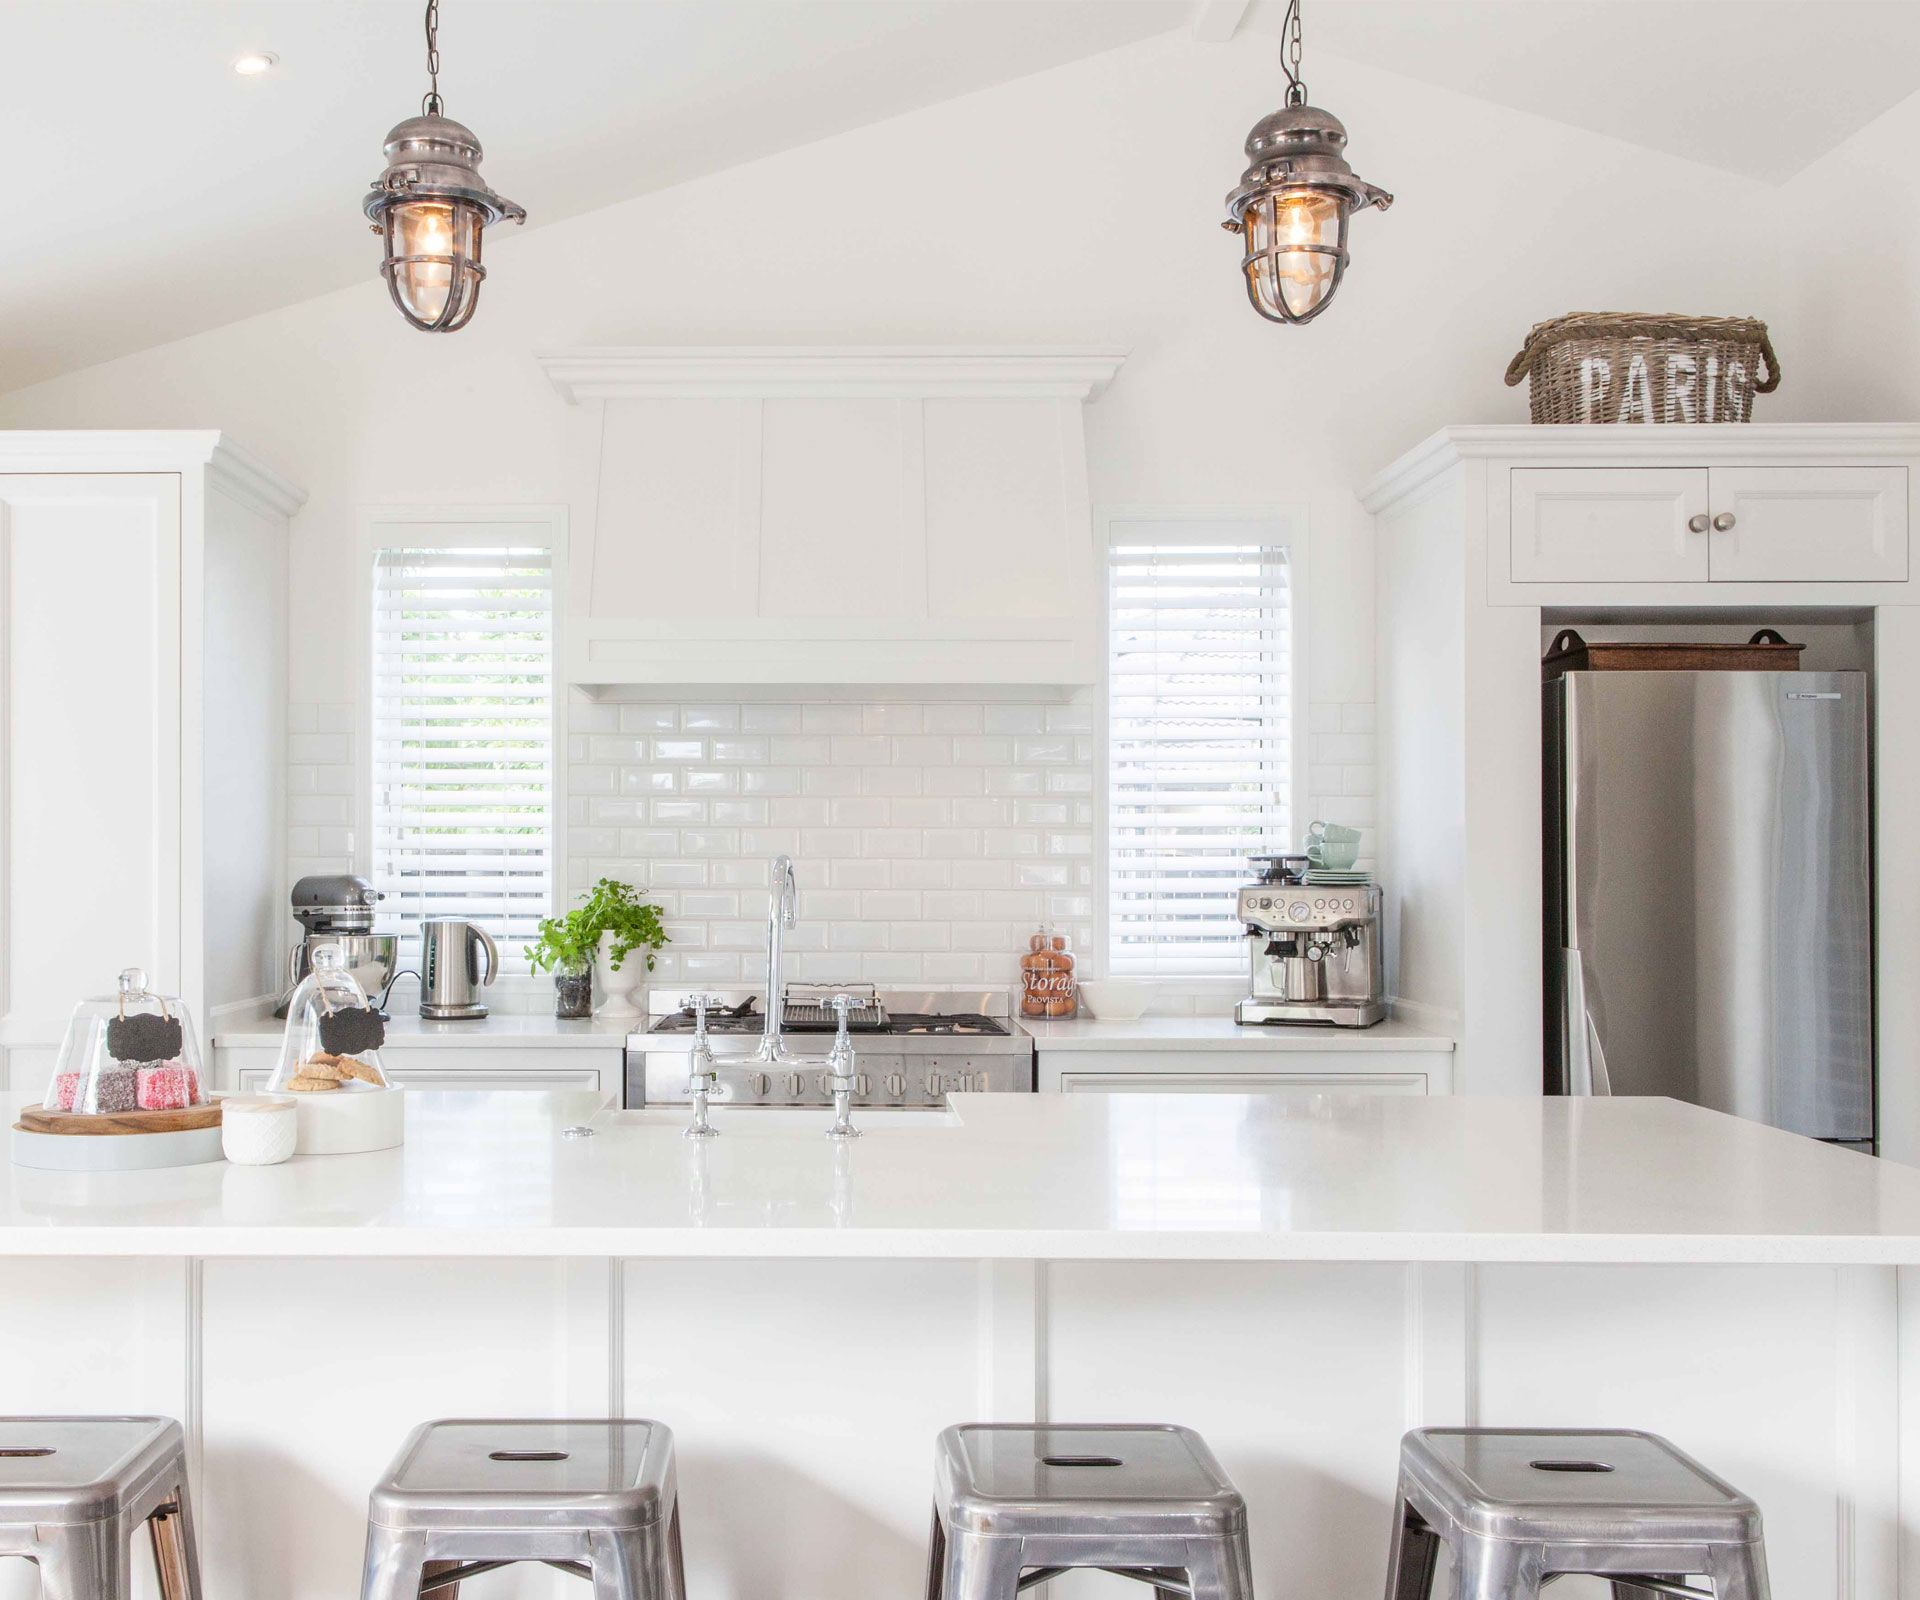 A Papamoa new-build with gorgeous villa features | Villas, Kitchens ...